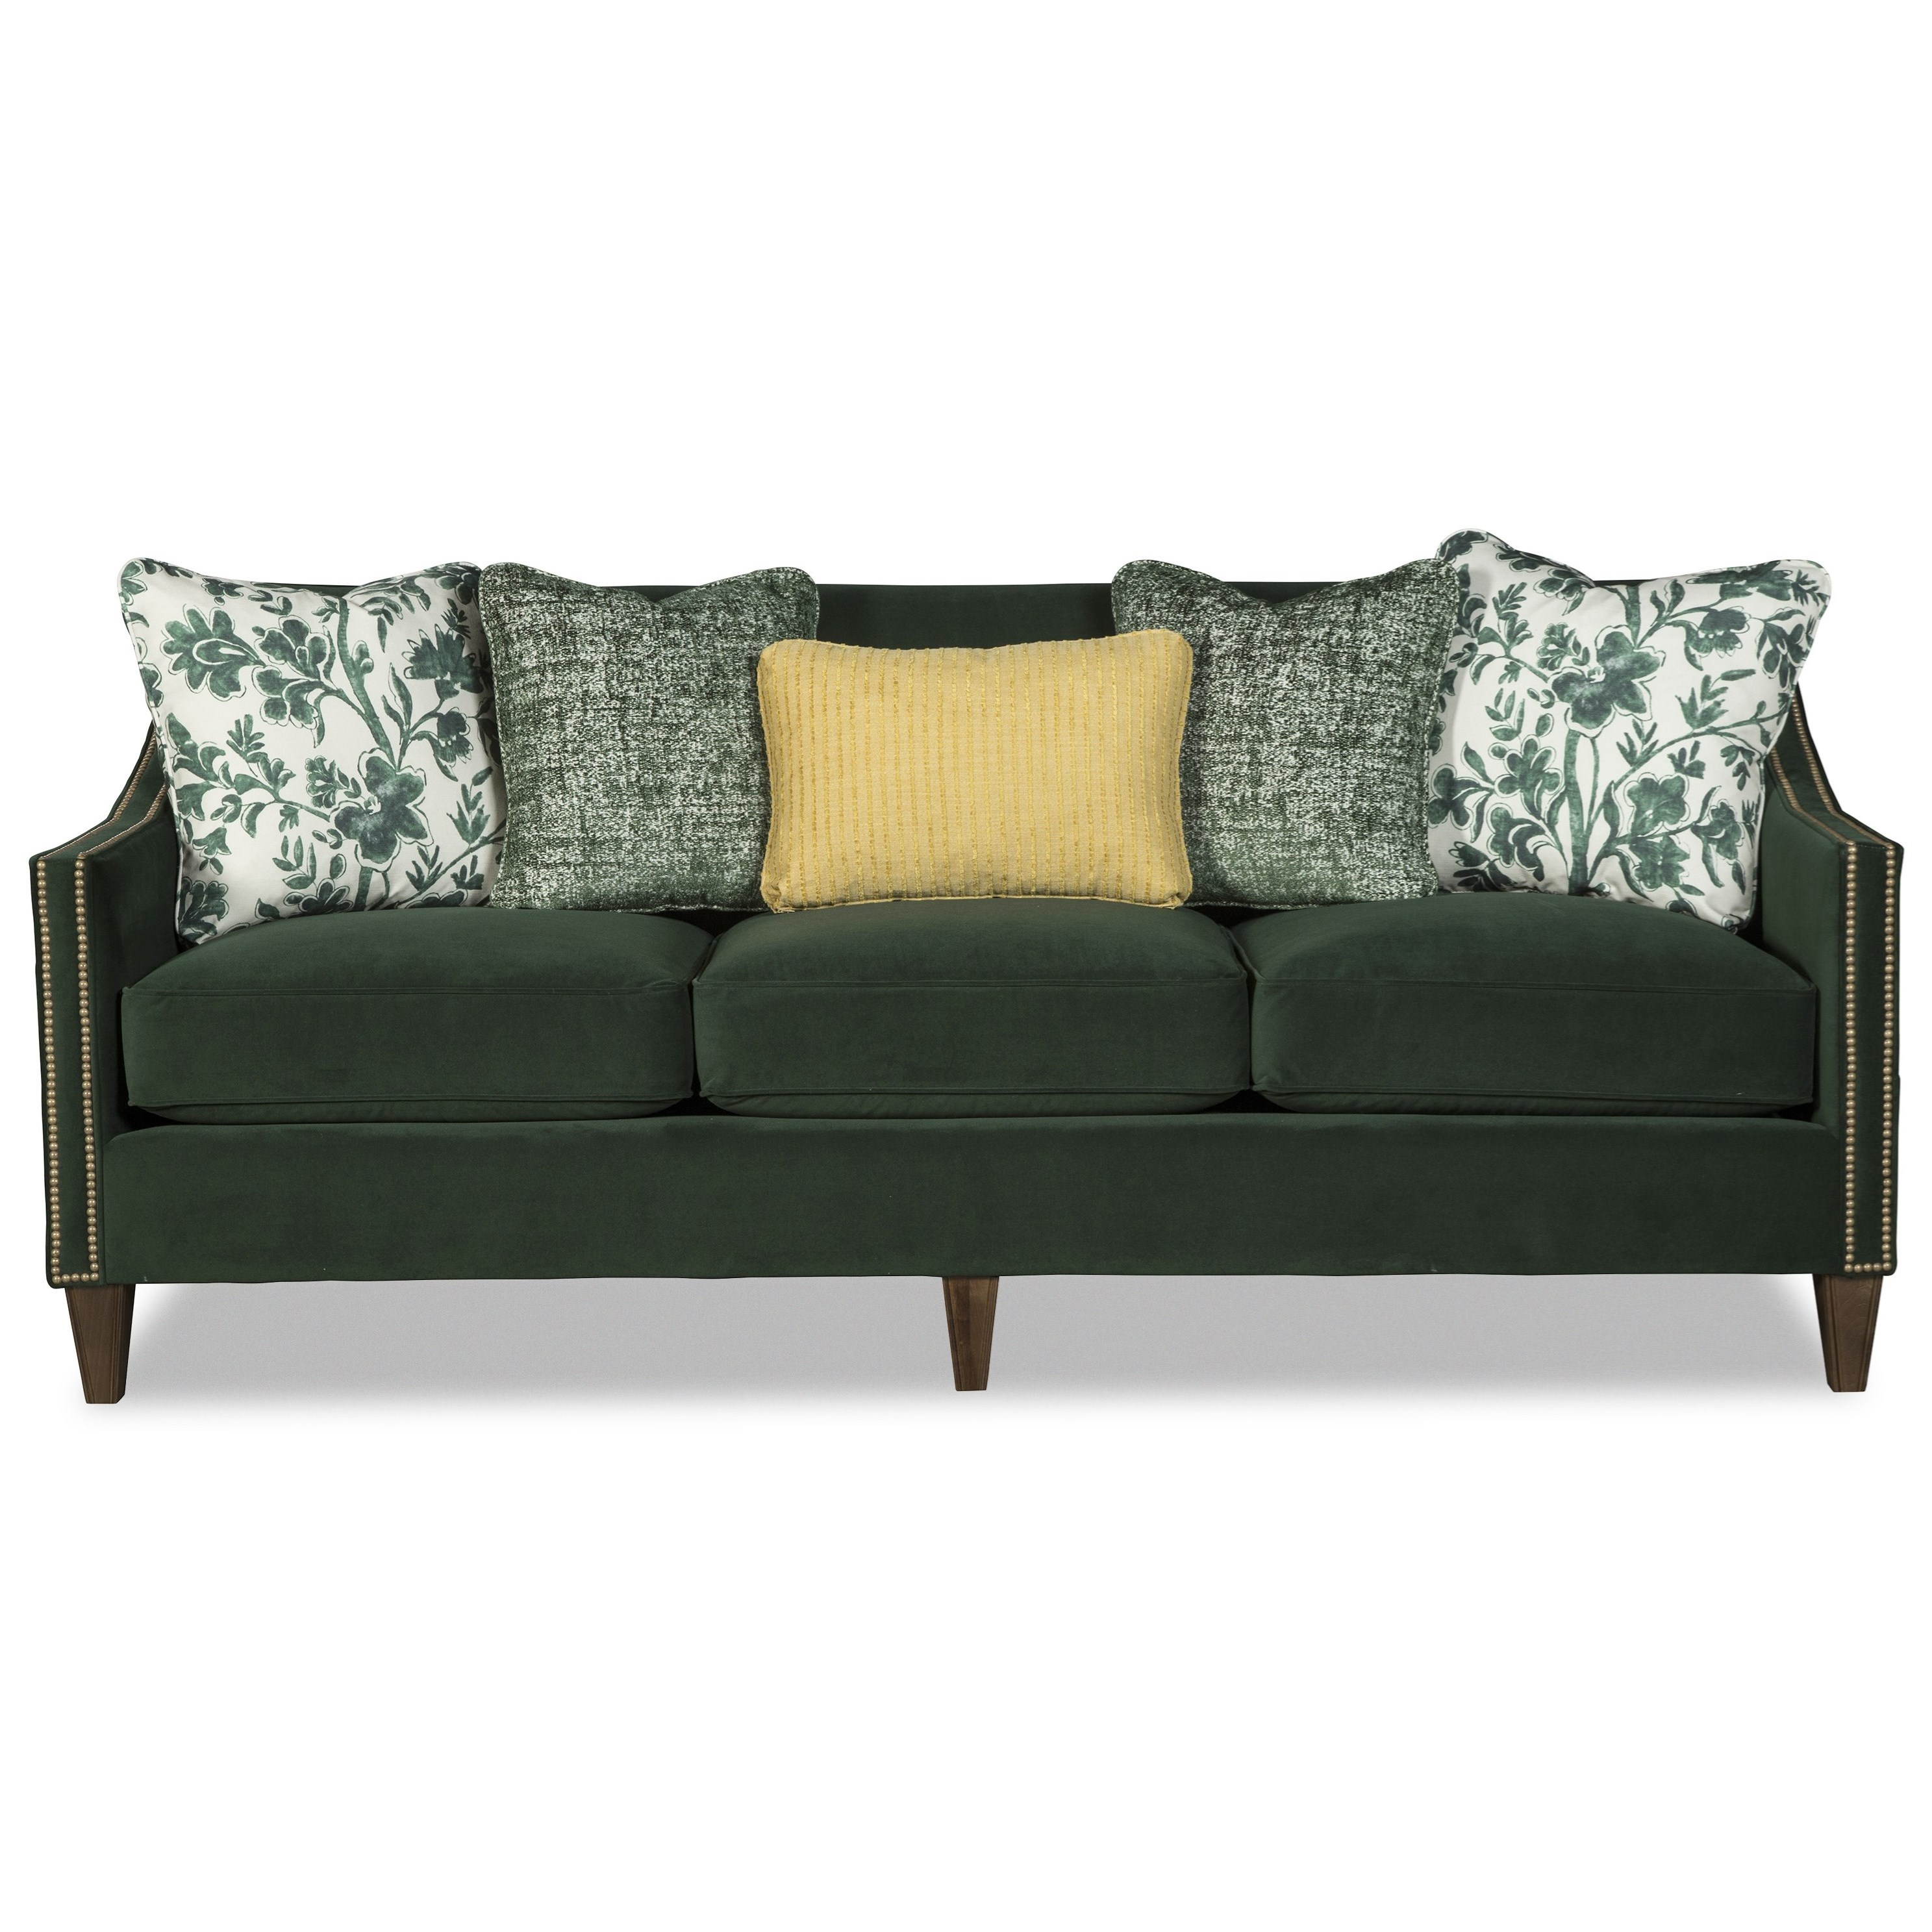 703950 Sofa by Craftmaster at Lindy's Furniture Company